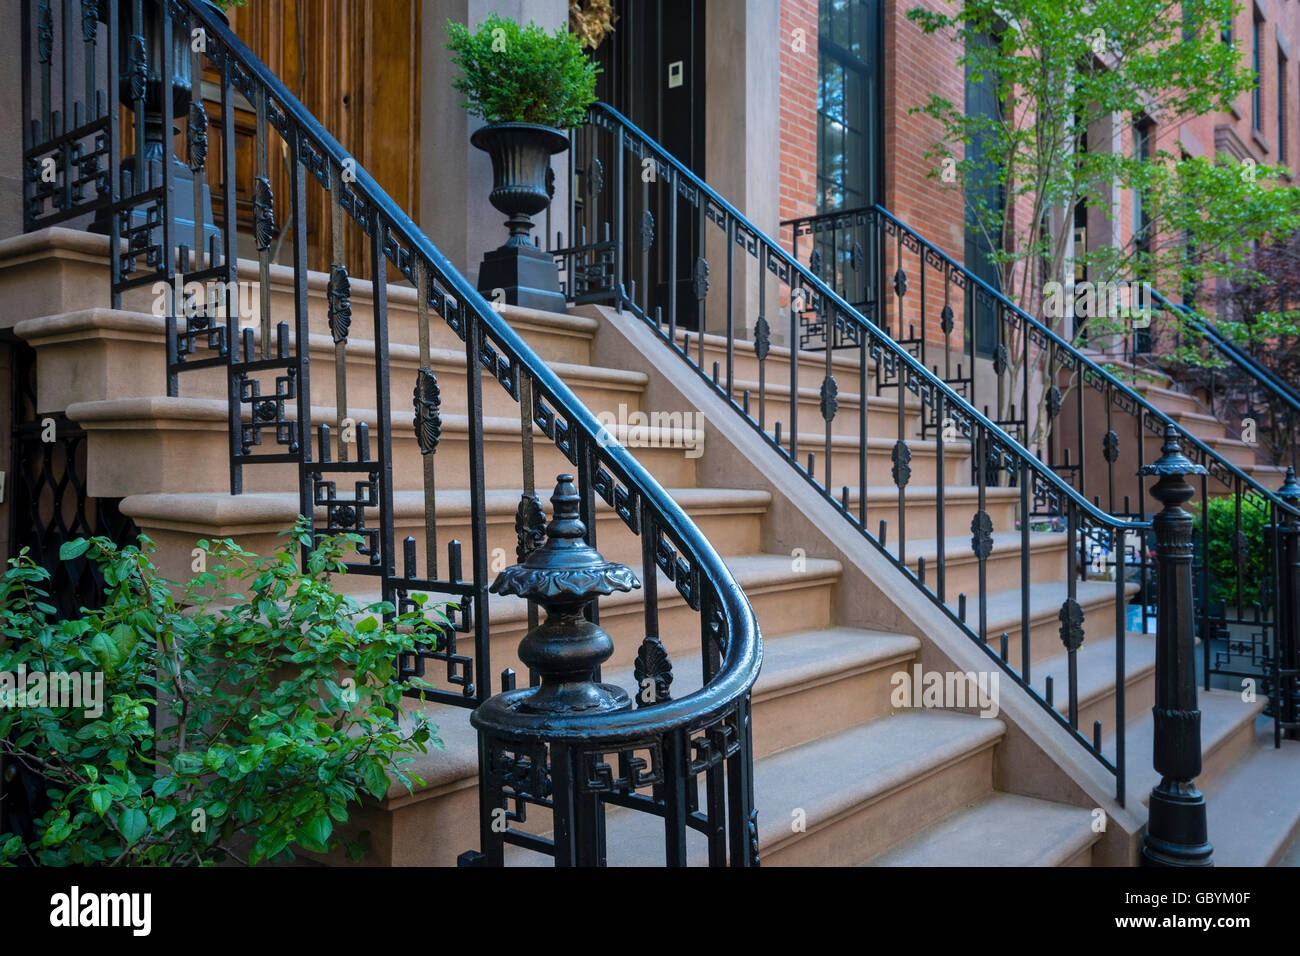 Wrought Iron Railings High Resolution Stock Photography And Images   Wrought Iron Handrail For Steps   3 Step   Grill   Forged Iron   Cast Iron   Wood Wall Mounted Stair